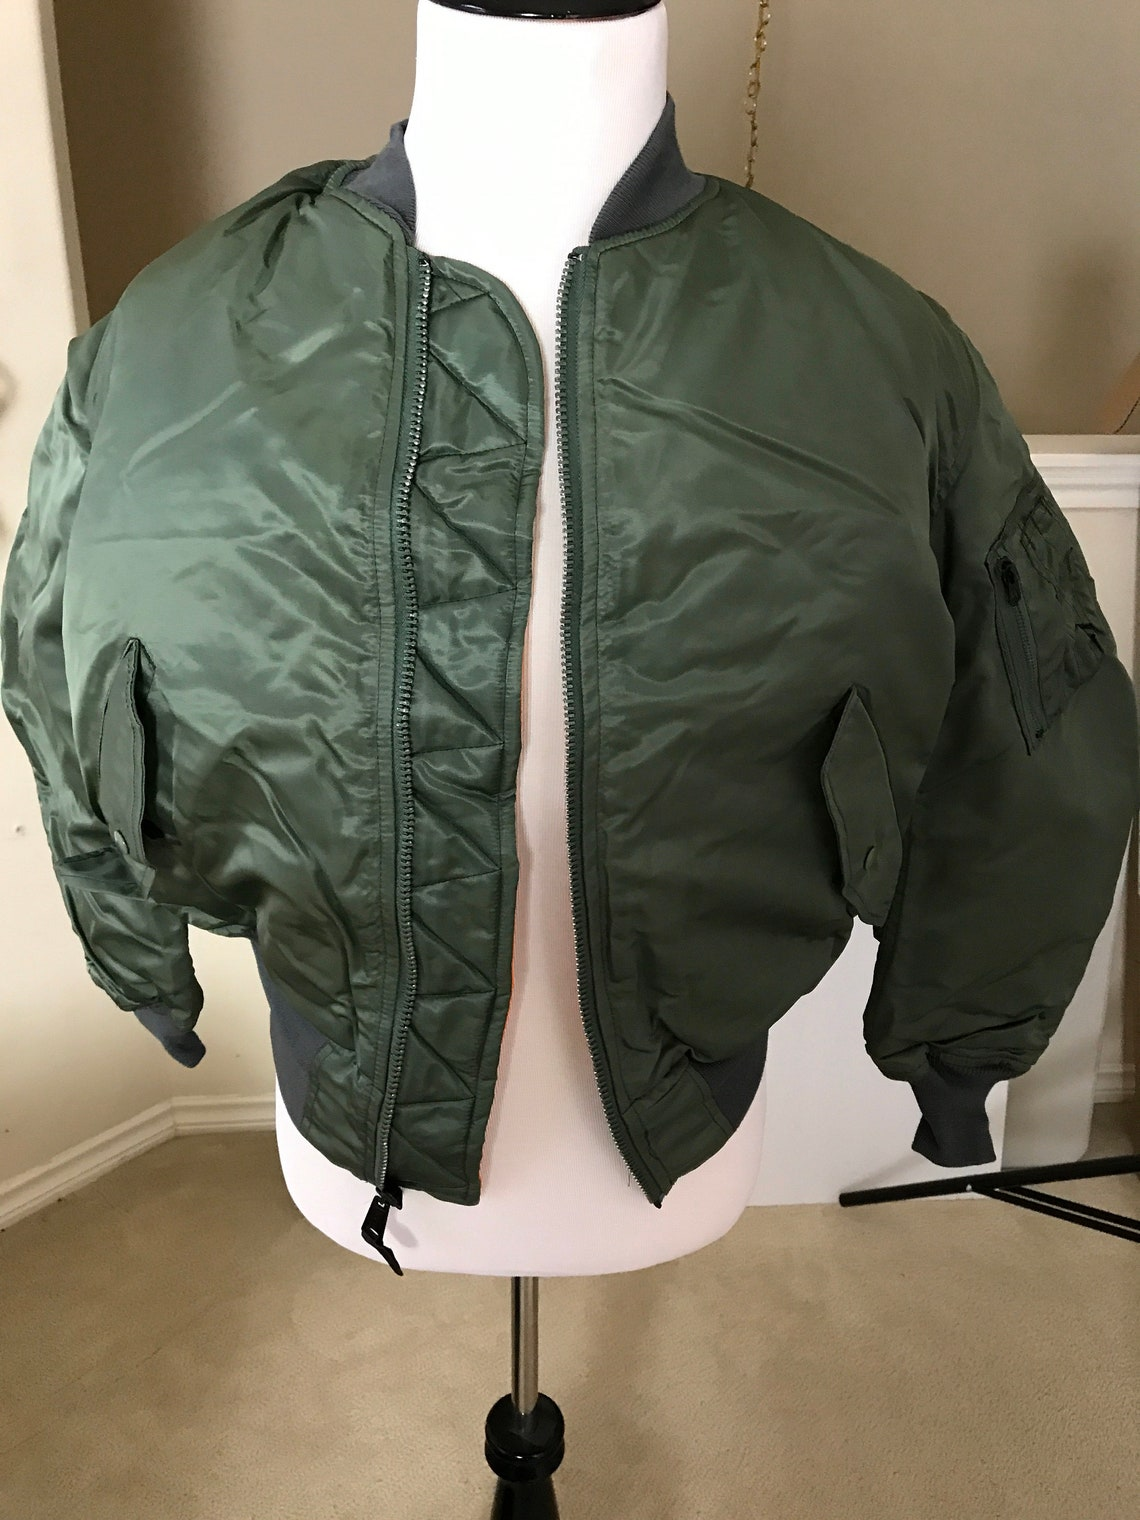 Usaf Ma-1 Green Vintage Flight Jacket By Greenbrier Mnfg New Made In Usa. Medium.